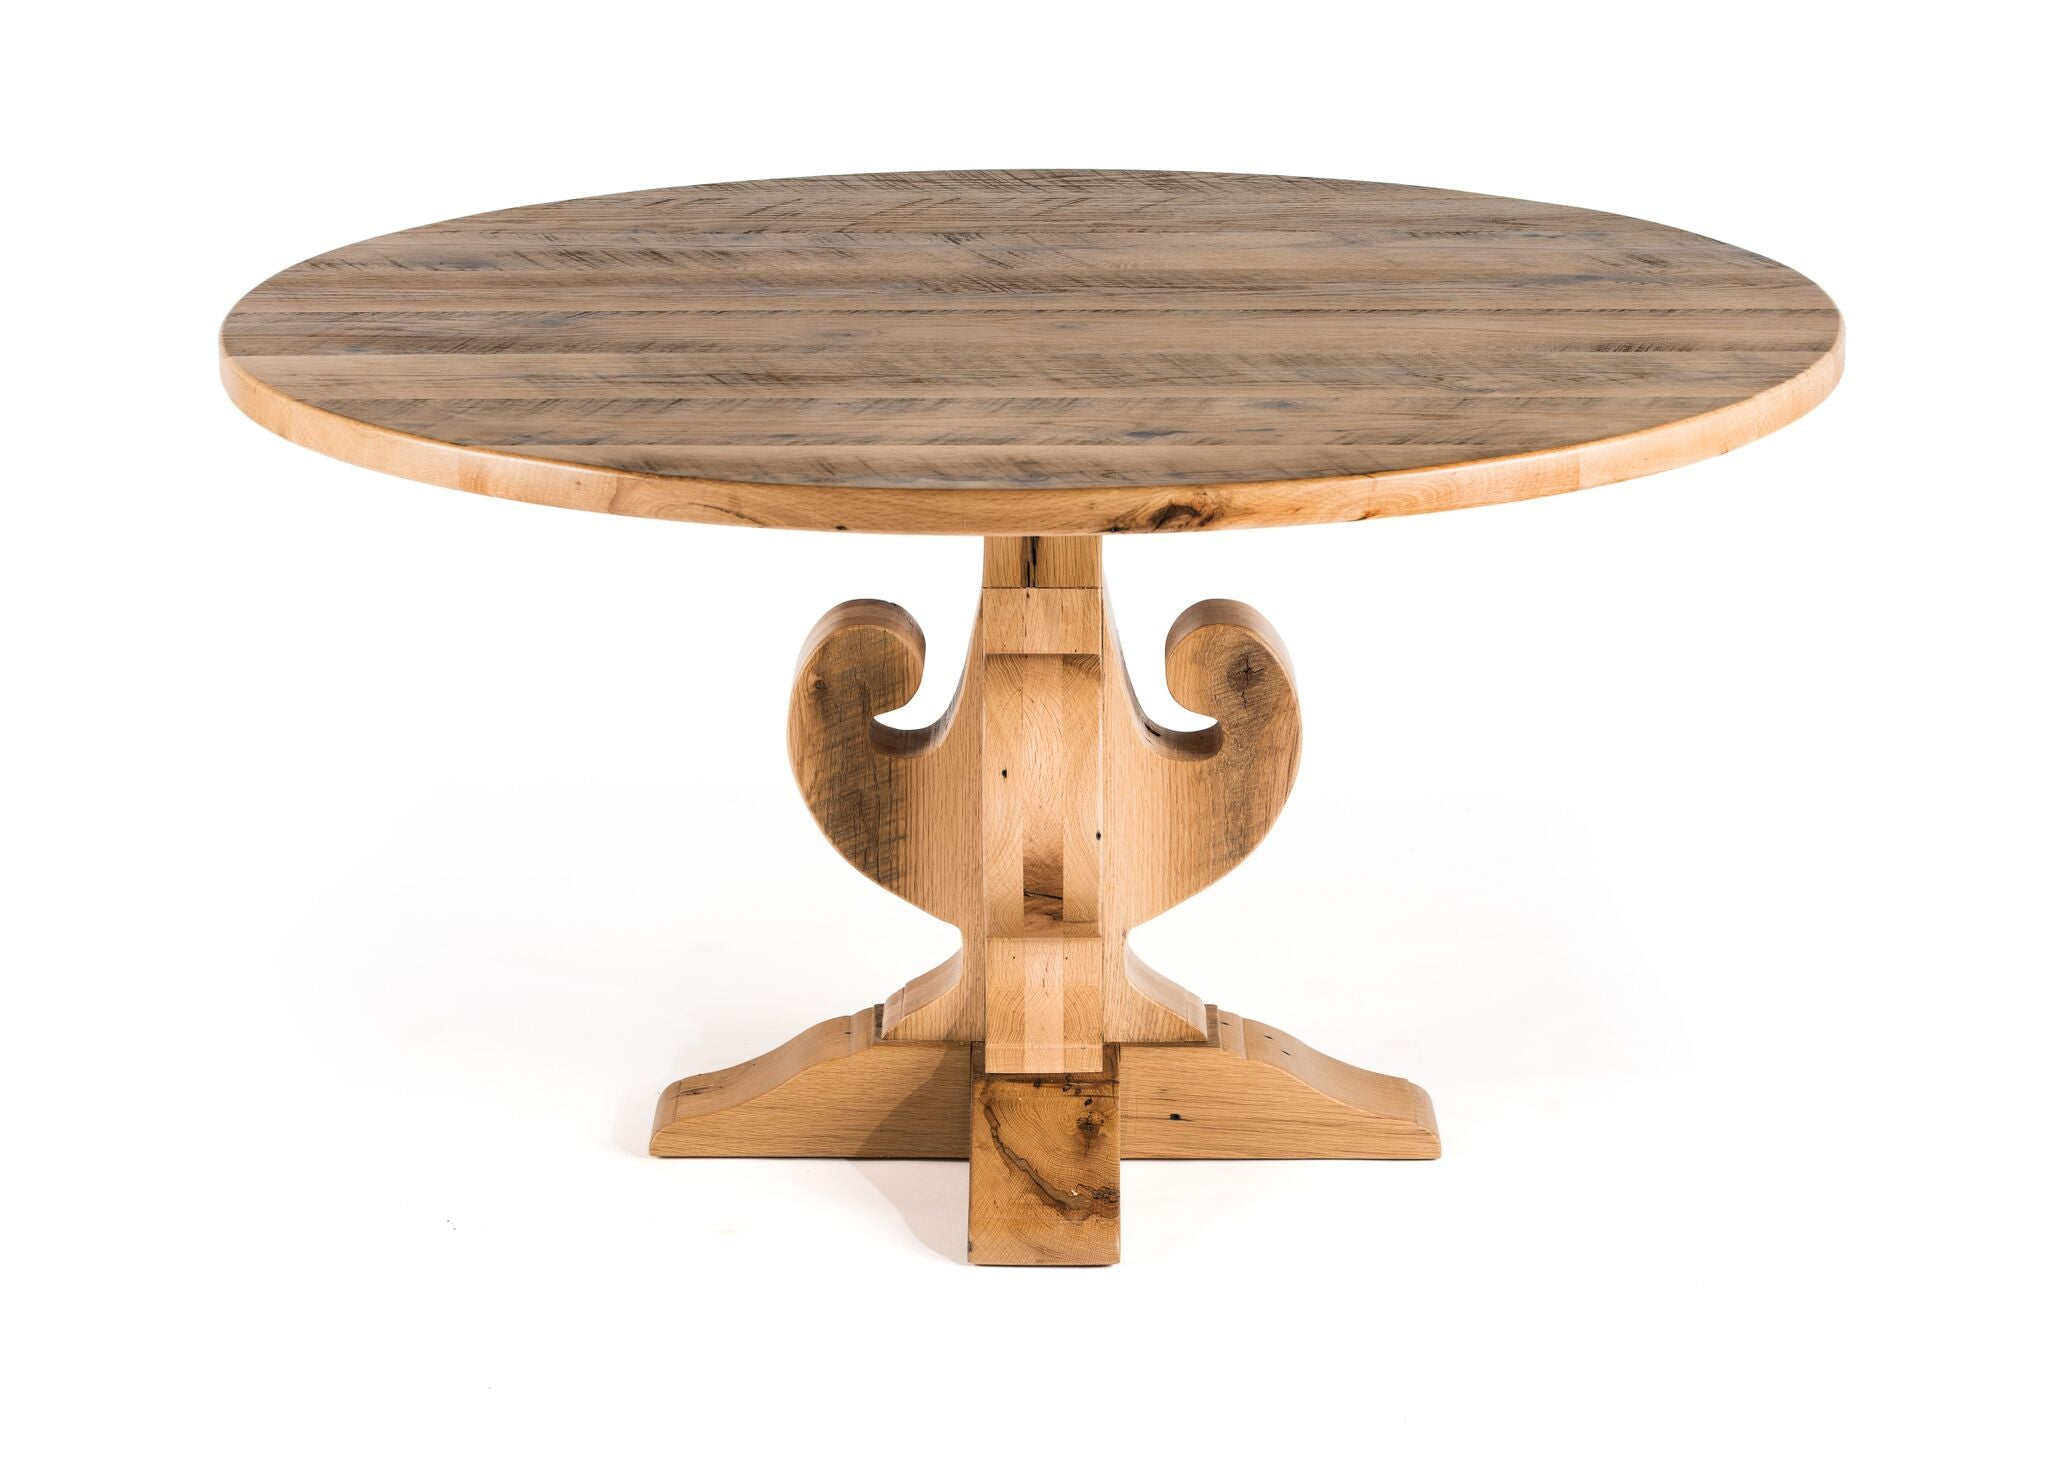 "Round Wood Tables | Farifield Trestle Table | Driftwood Grey | Driftwood Grey | Diameter 42 |  Height 30 | 1.5"" Standard"